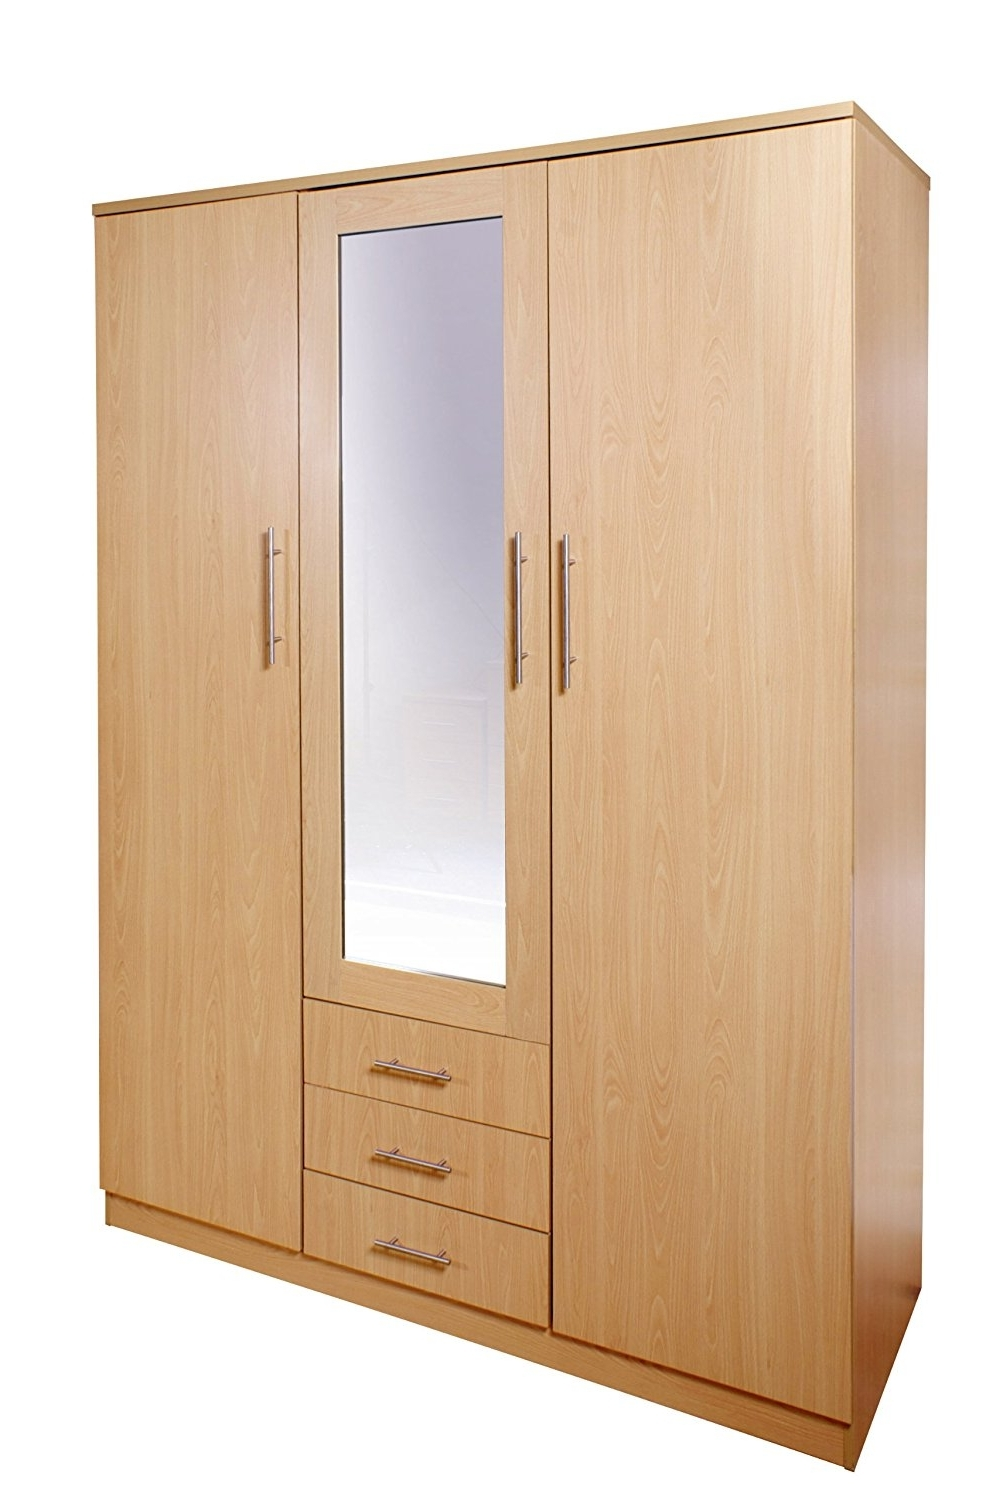 2018 White Wardrobes With Mirror Wardrobe Ikea Pax Door Closet Can Make Regarding Cheap Wardrobes With Mirrors (View 2 of 15)